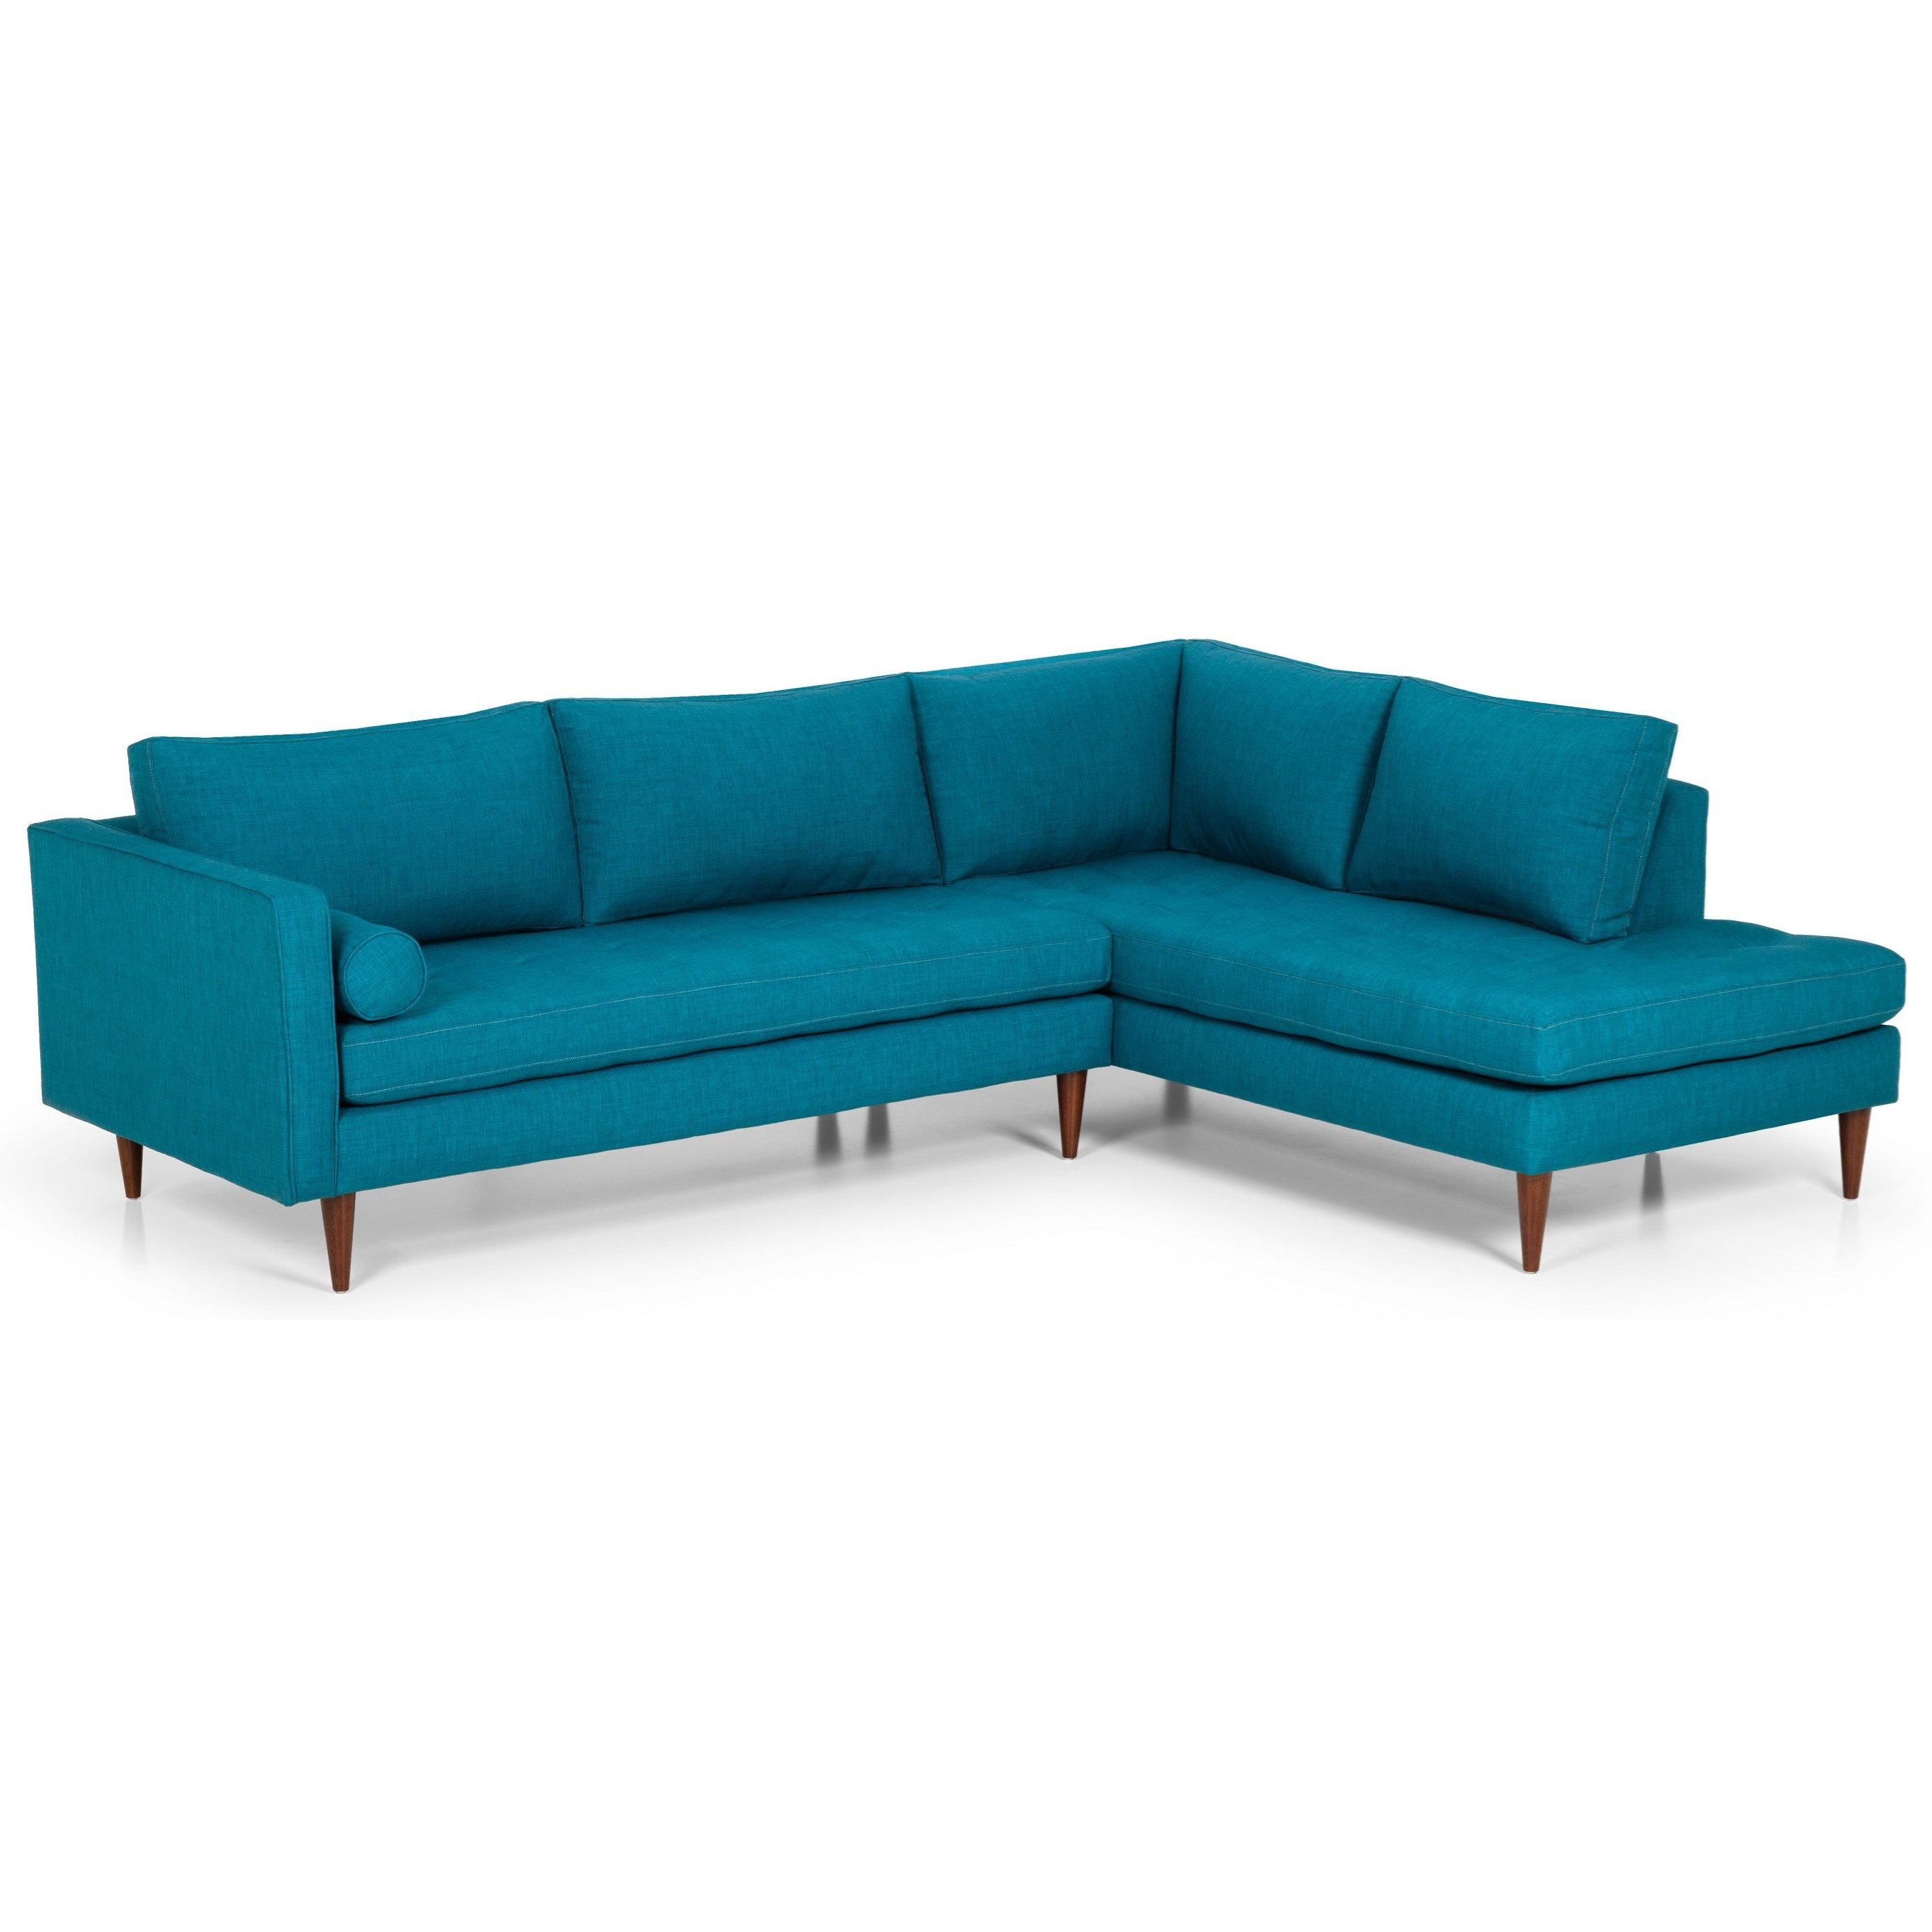 Sunset Home 533 Mid Century Modern L Shaped Sectional Sadler S Home Furnishings Sectional Sofas